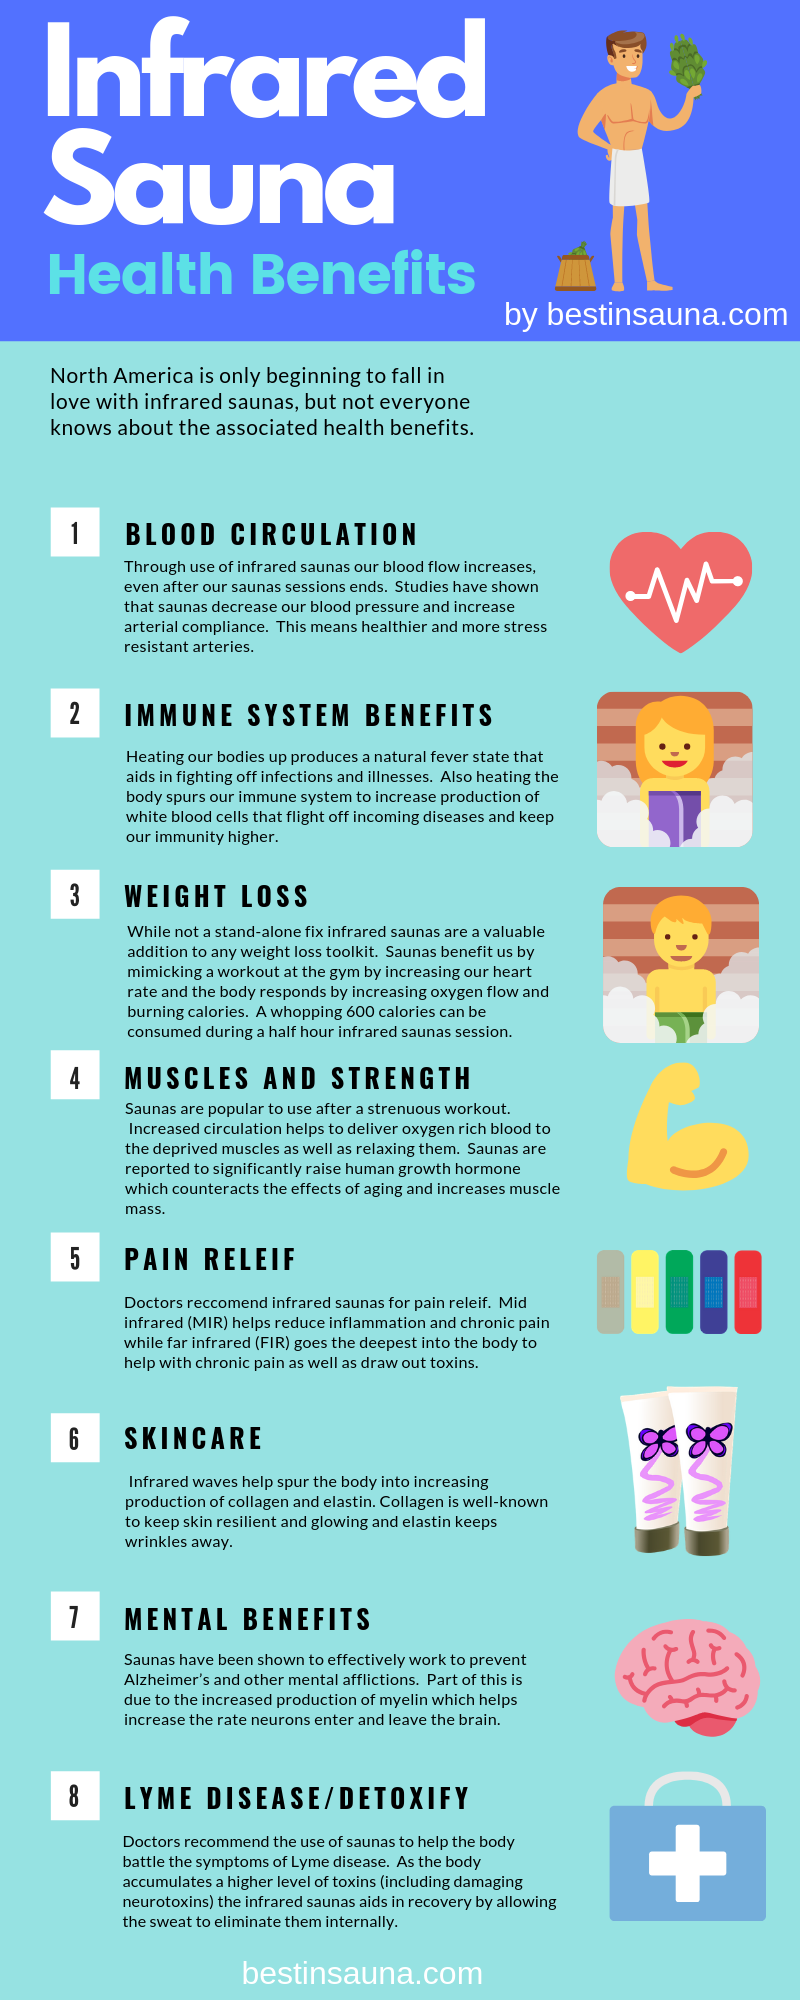 HEALTH-BENEFITS-OF-AN-INFRARED-SAUNA-infographic-plaza